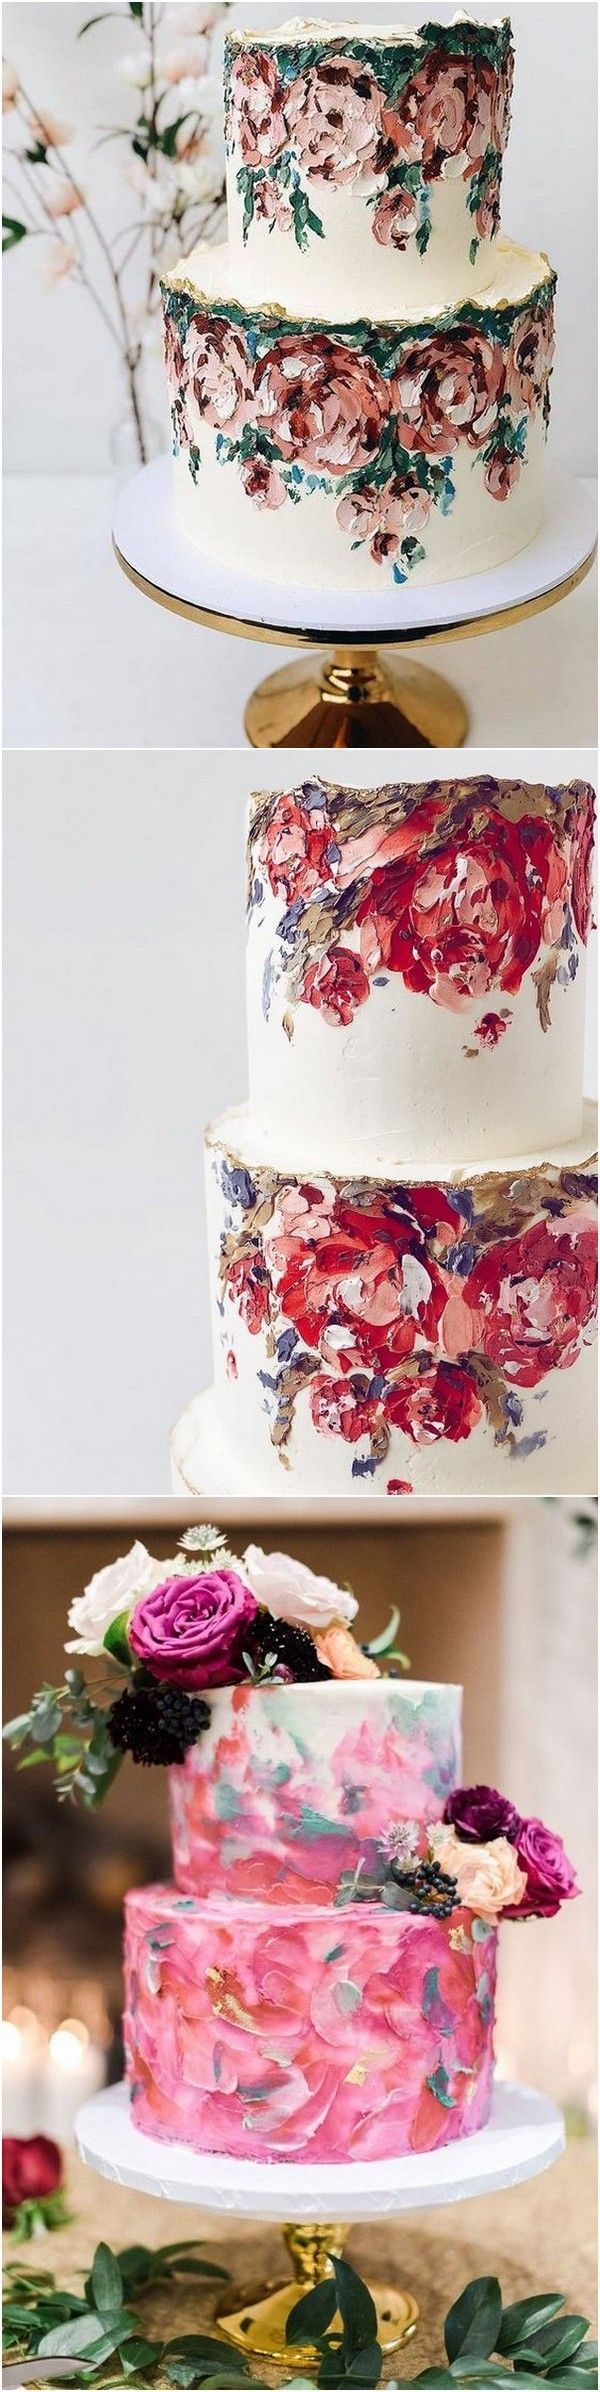 Trending-20 Gorgeous Hand-painted Wedding Cakes for 2019